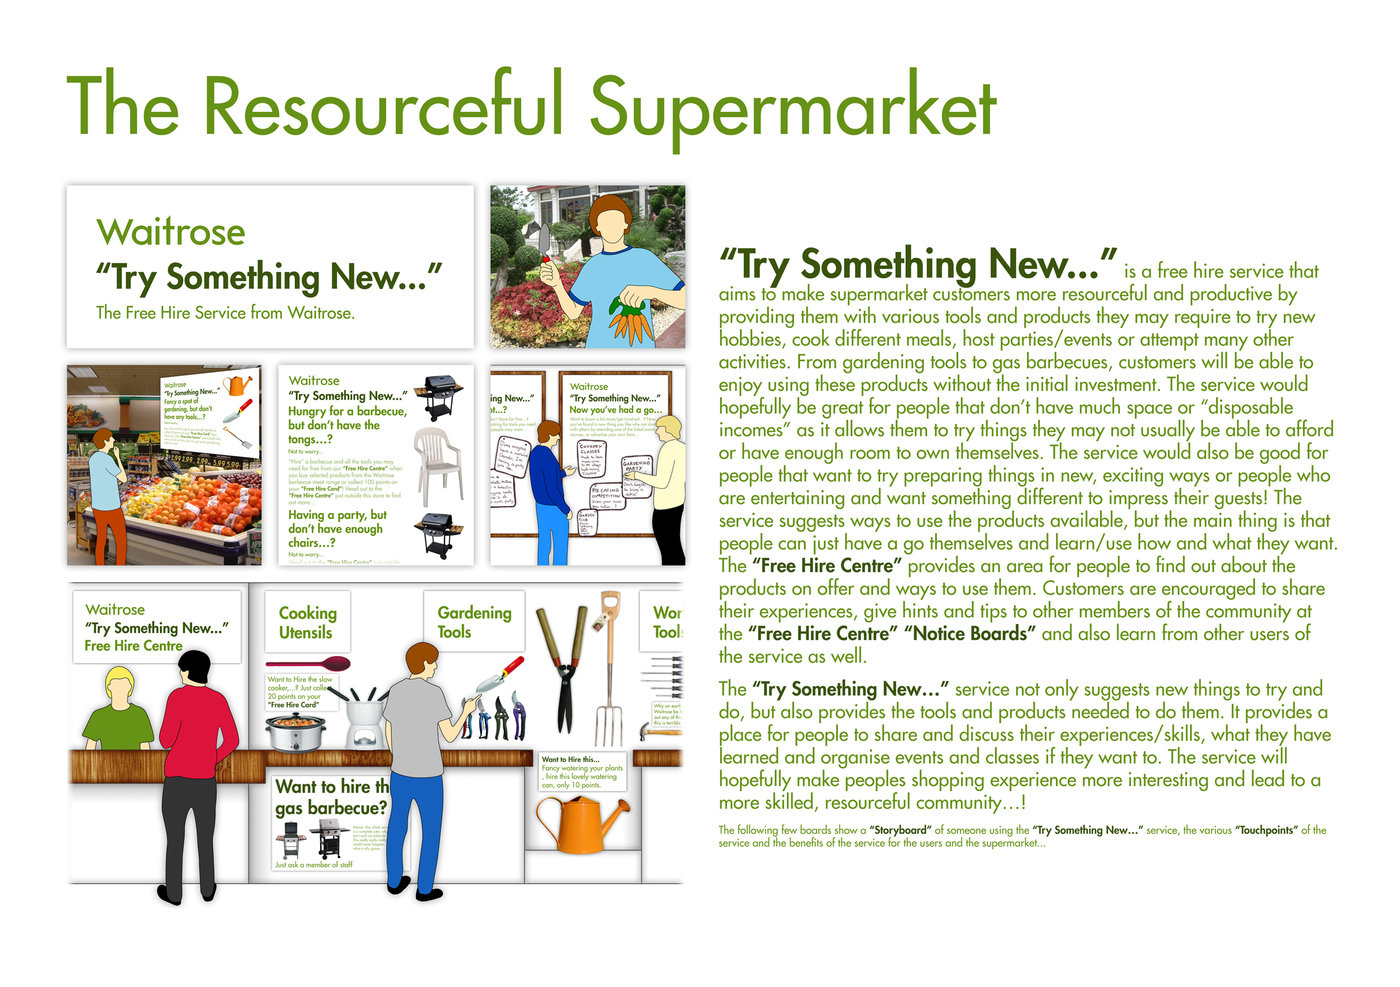 an introduction to the analysis of a supermarket A market analysis is a quantitative and qualitative assessment of a market it looks into the size of the market both in volume and in value, the various customer segments and buying patterns, the competition, and the economic environment in terms of barriers to entry and regulation.